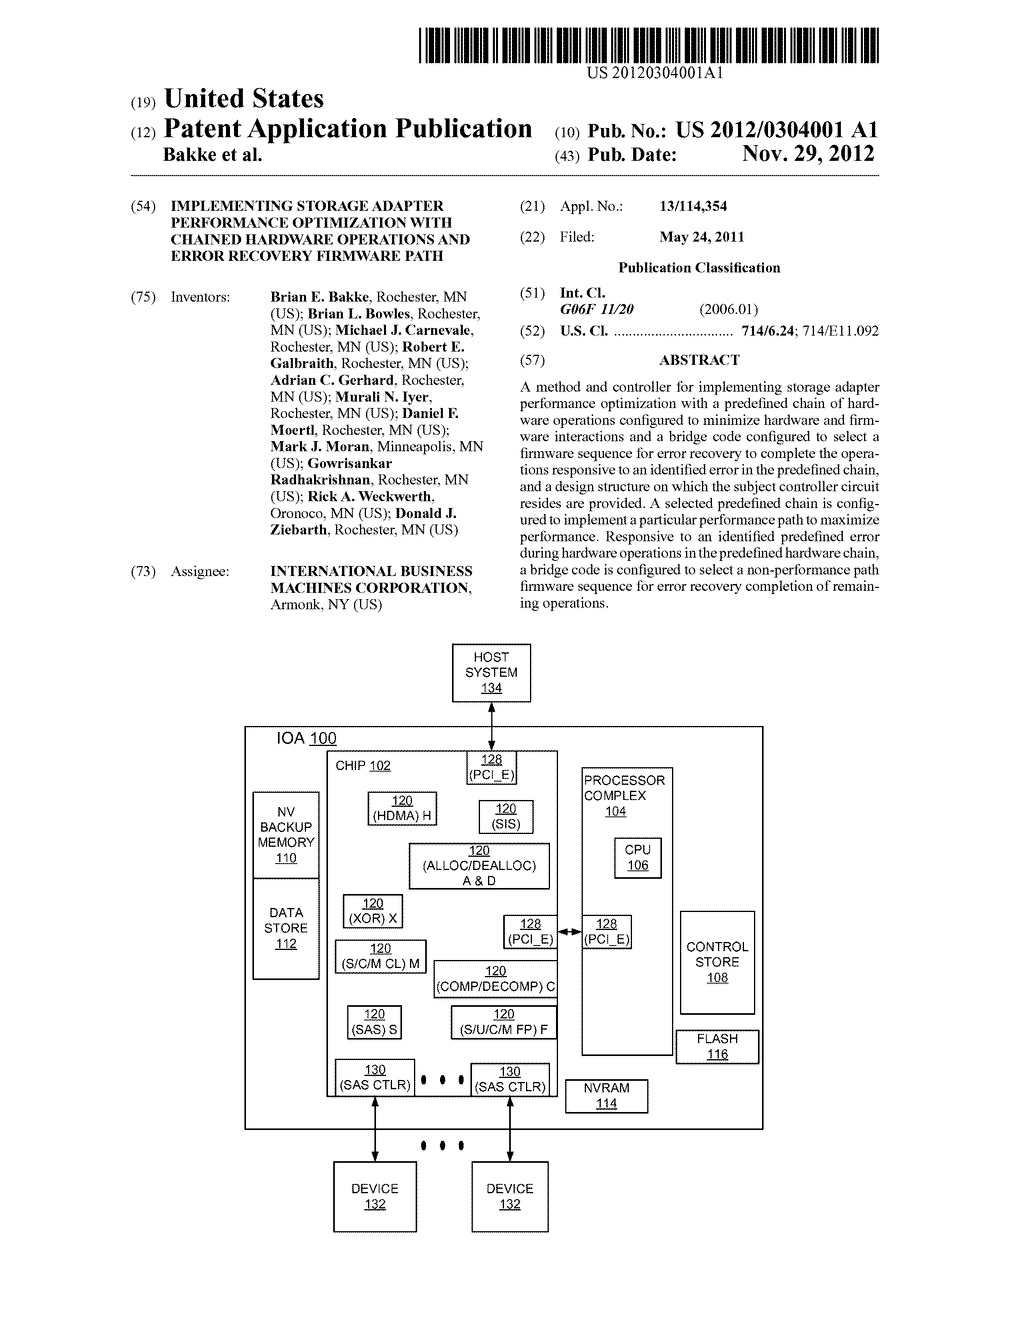 IMPLEMENTING STORAGE ADAPTER PERFORMANCE OPTIMIZATION WITH CHAINED     HARDWARE OPERATIONS AND ERROR RECOVERY FIRMWARE PATH - diagram, schematic, and image 01